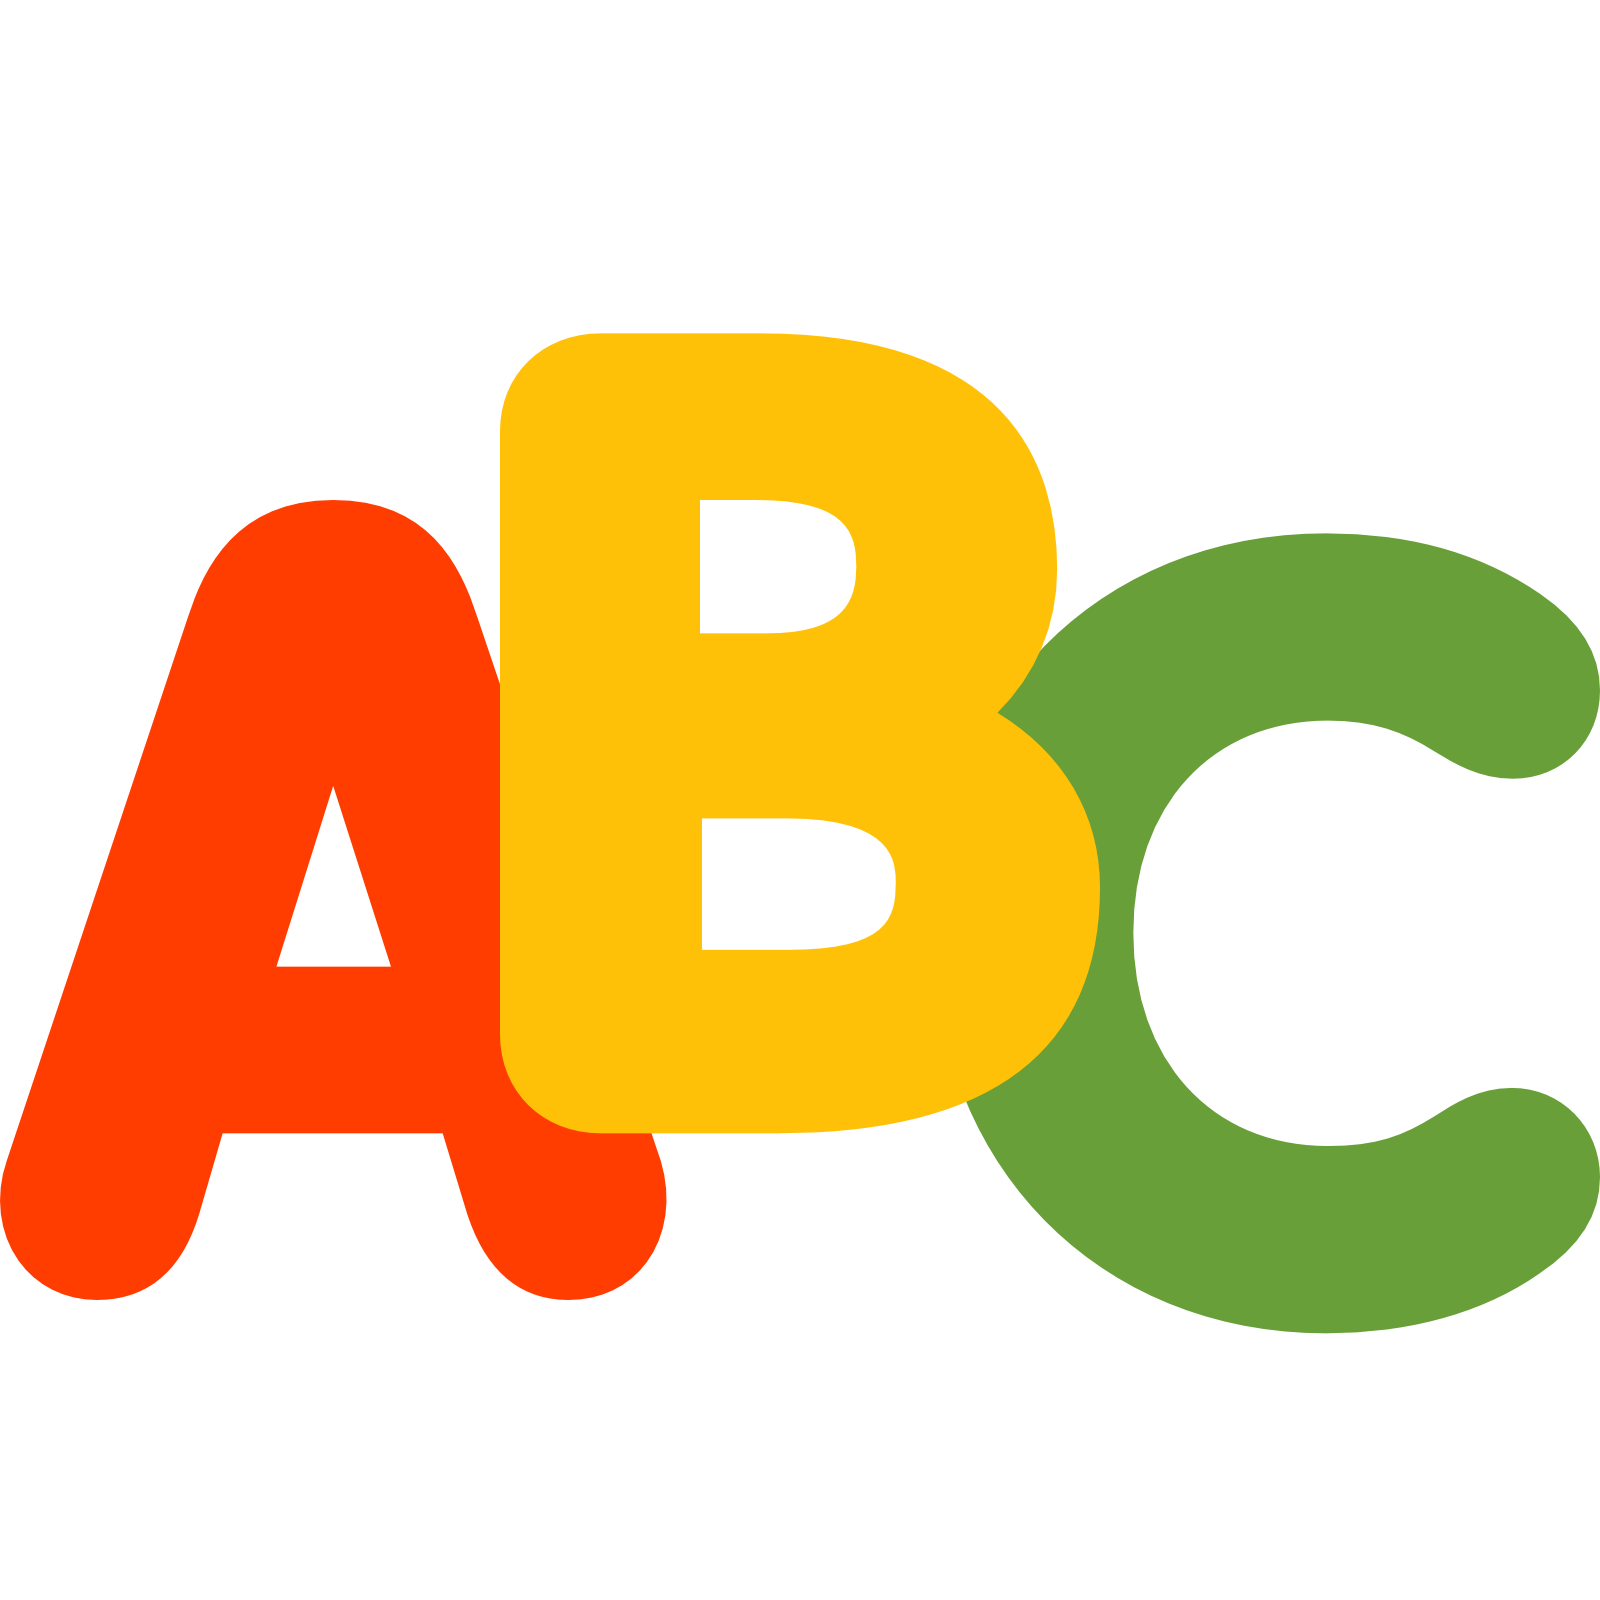 abc clipart at getdrawings com free for personal use abc clipart rh getdrawings com abc clip art letters abc clip art free